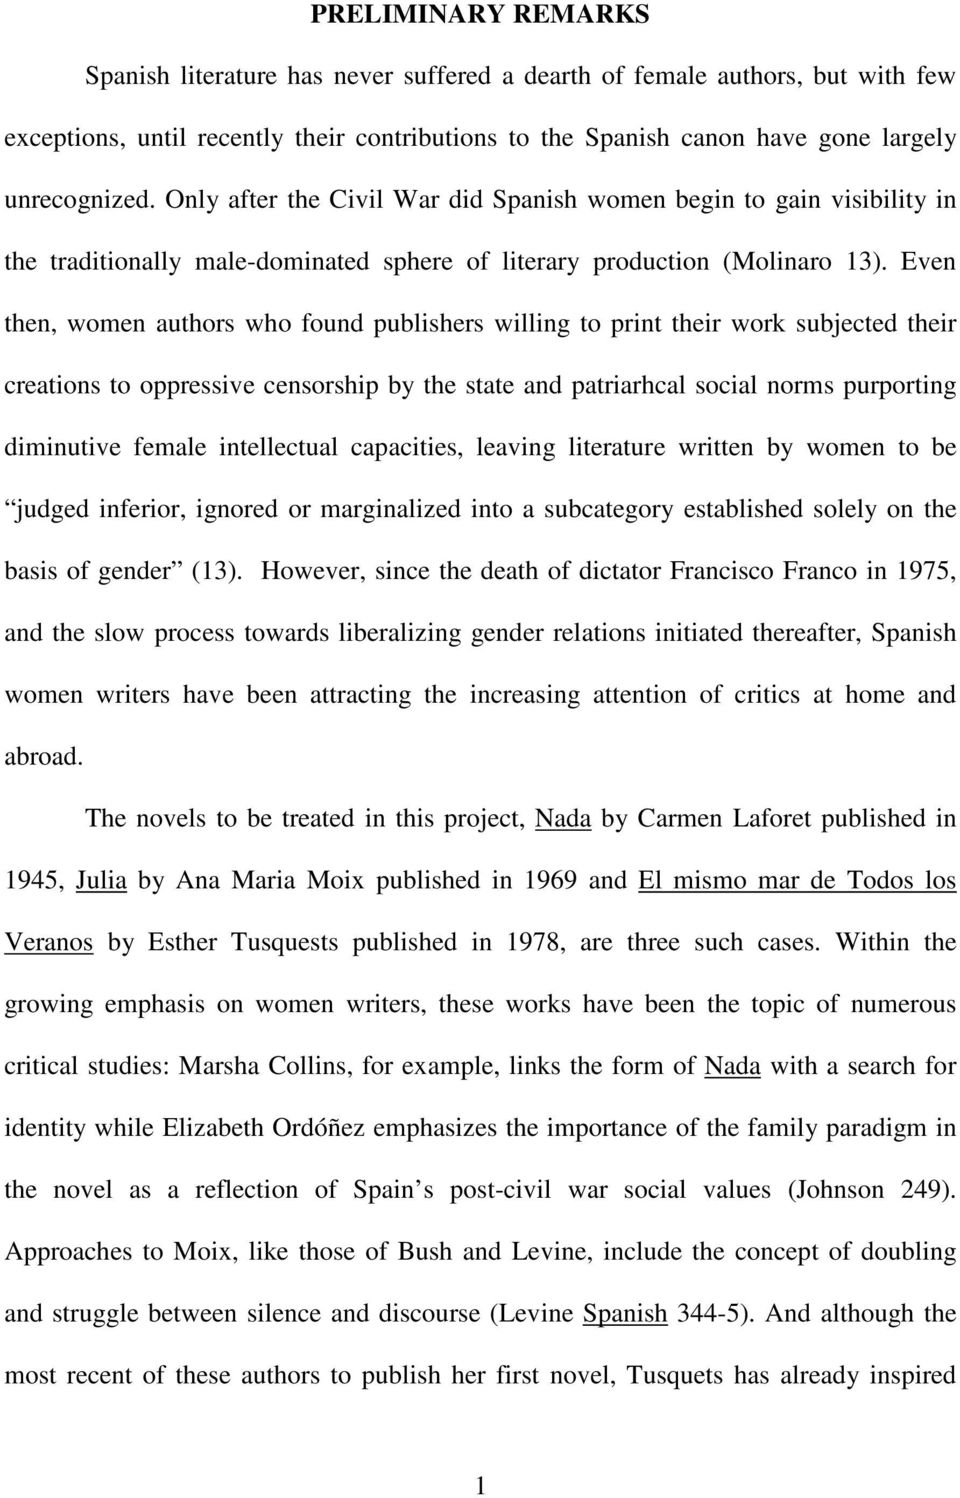 Even then, women authors who found publishers willing to print their work subjected their creations to oppressive censorship by the state and patriarhcal social norms purporting diminutive female